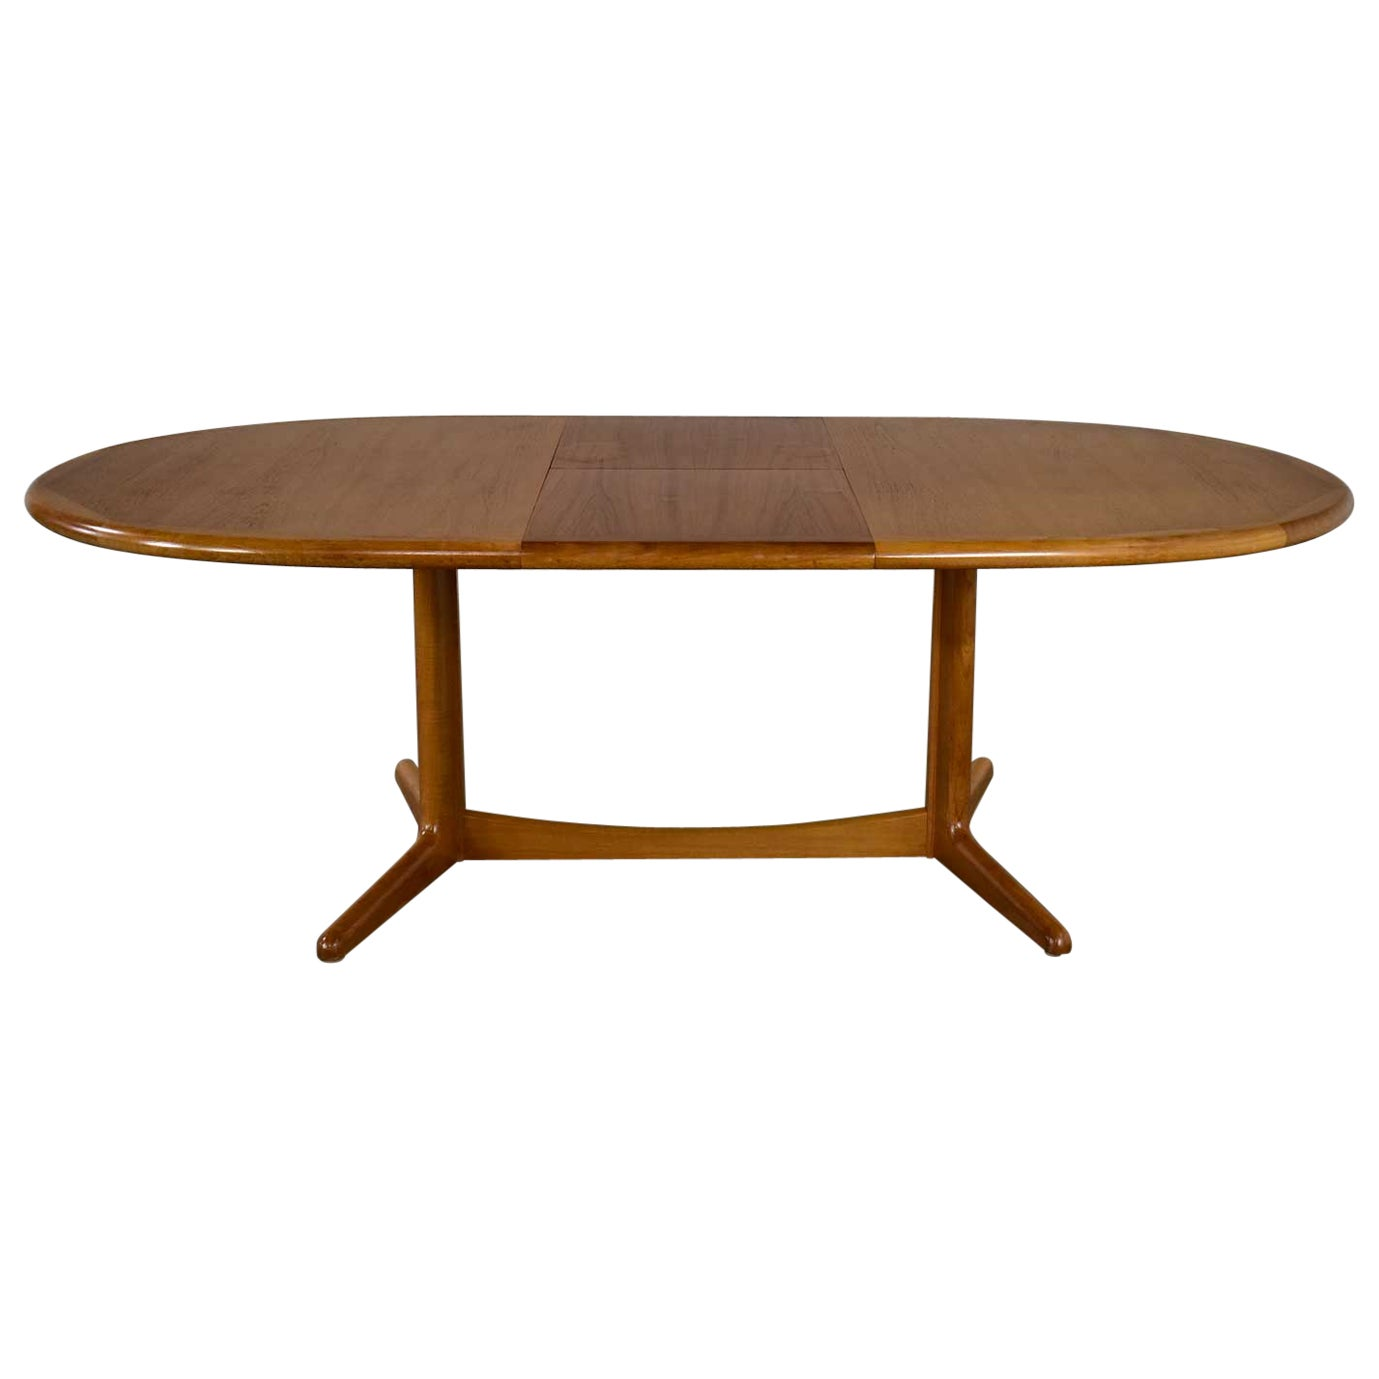 Scandinavian Modern Teak Oval Dining Table with Integral Leaf Style Dyrlund